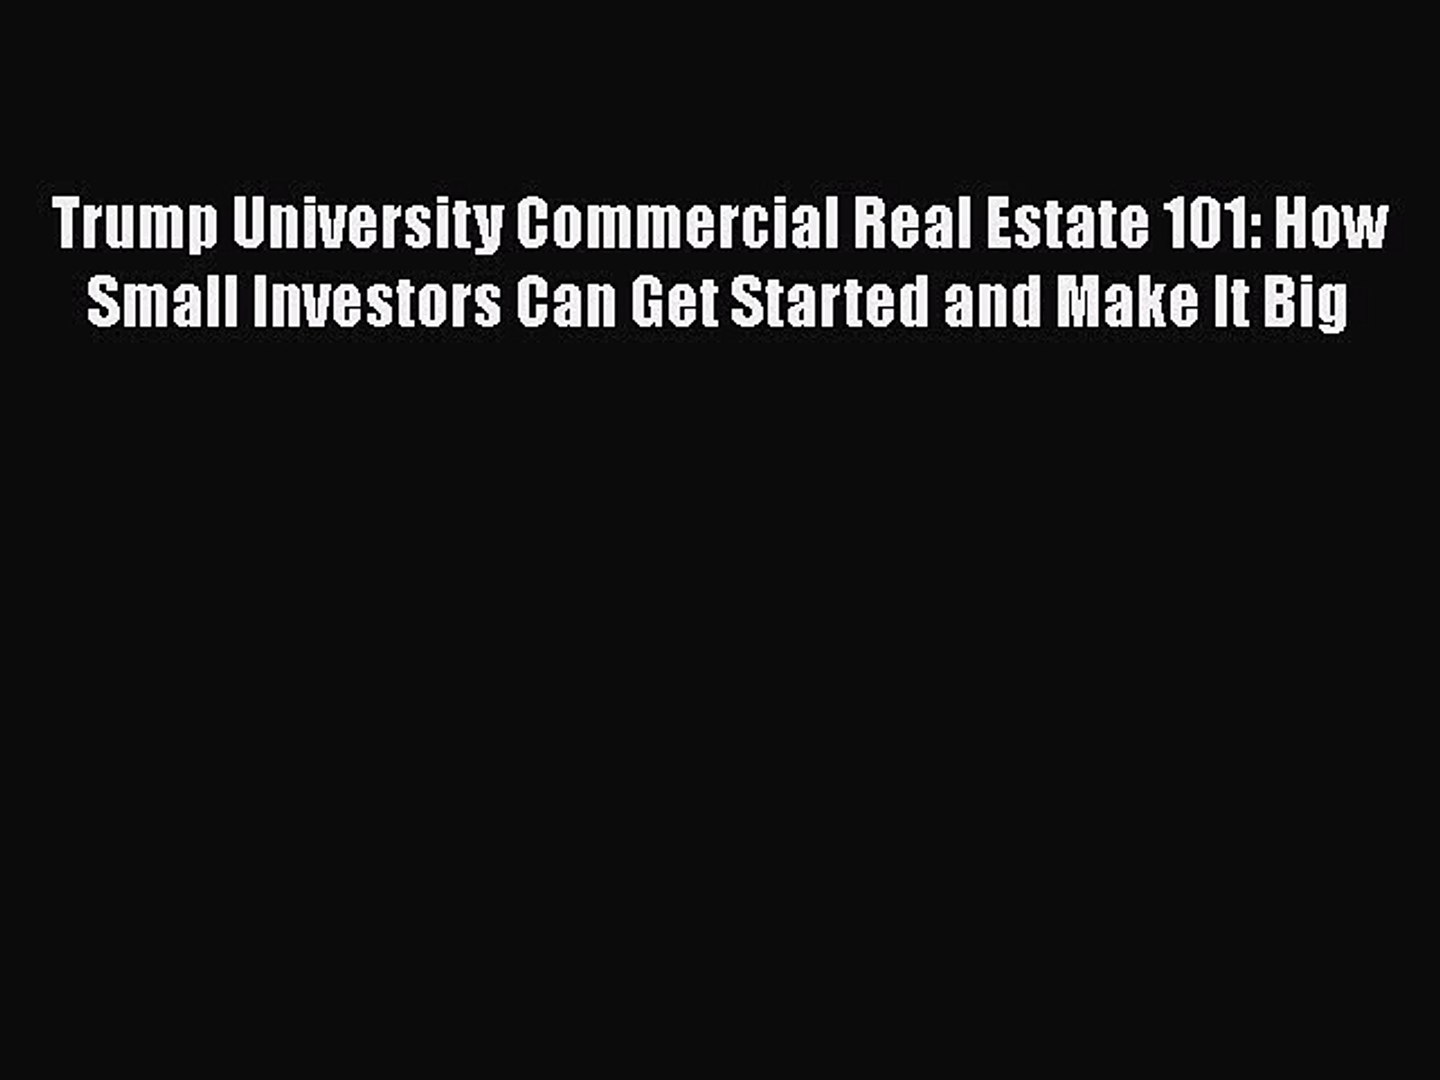 Read Trump University Commercial Real Estate 101: How Small Investors Can Get Started and Make